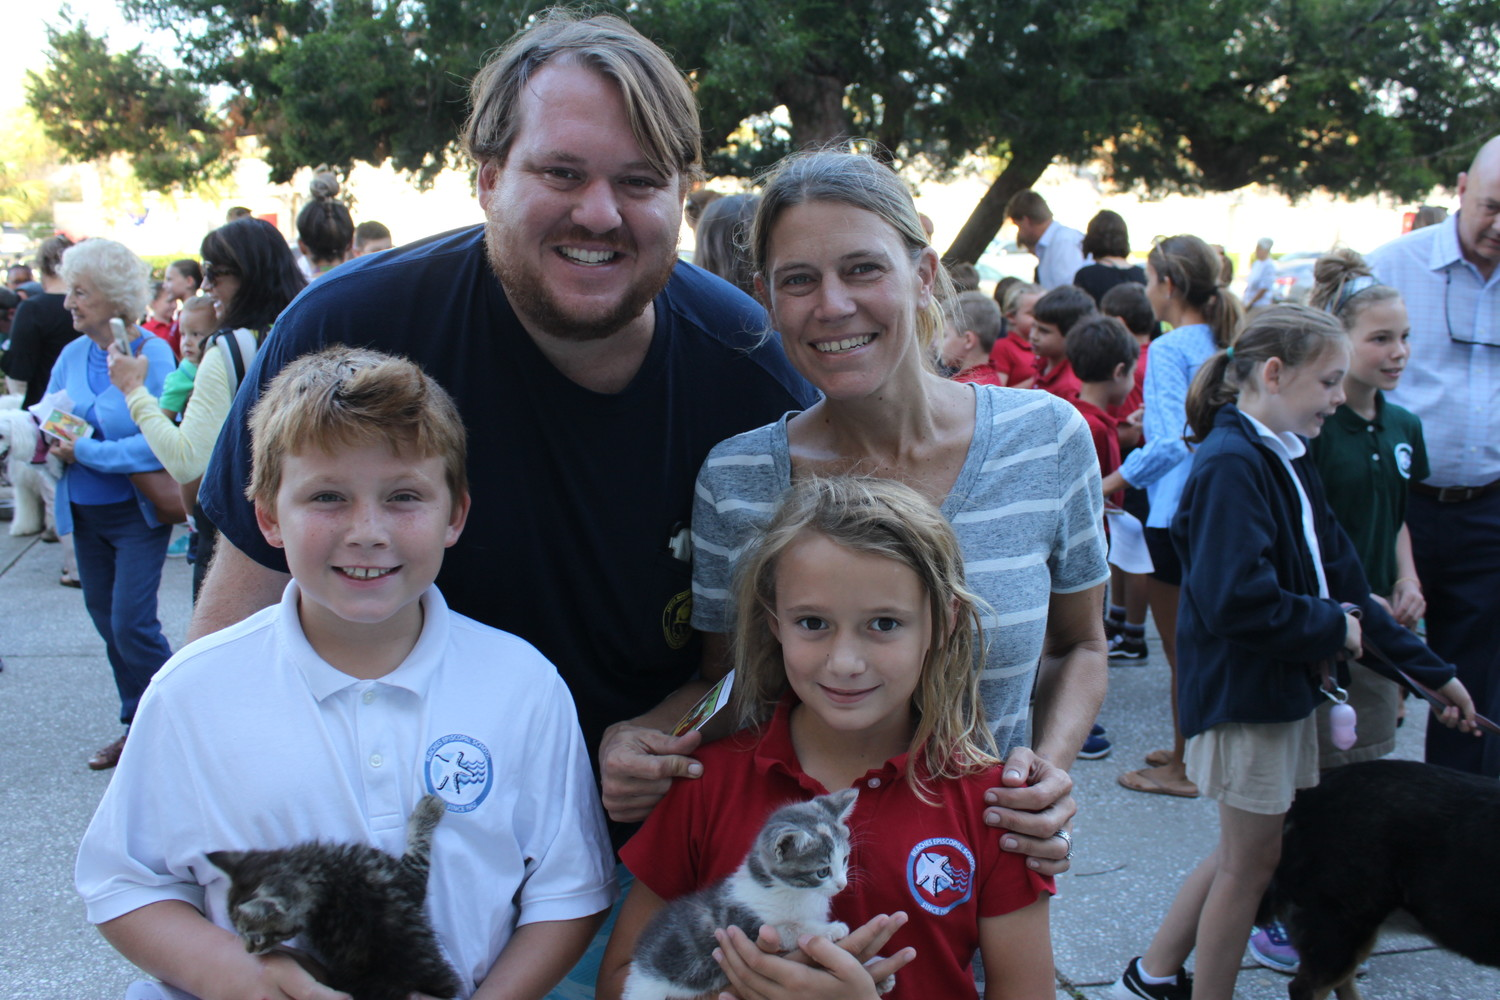 Families gather at Beaches Episcopal's annual event.